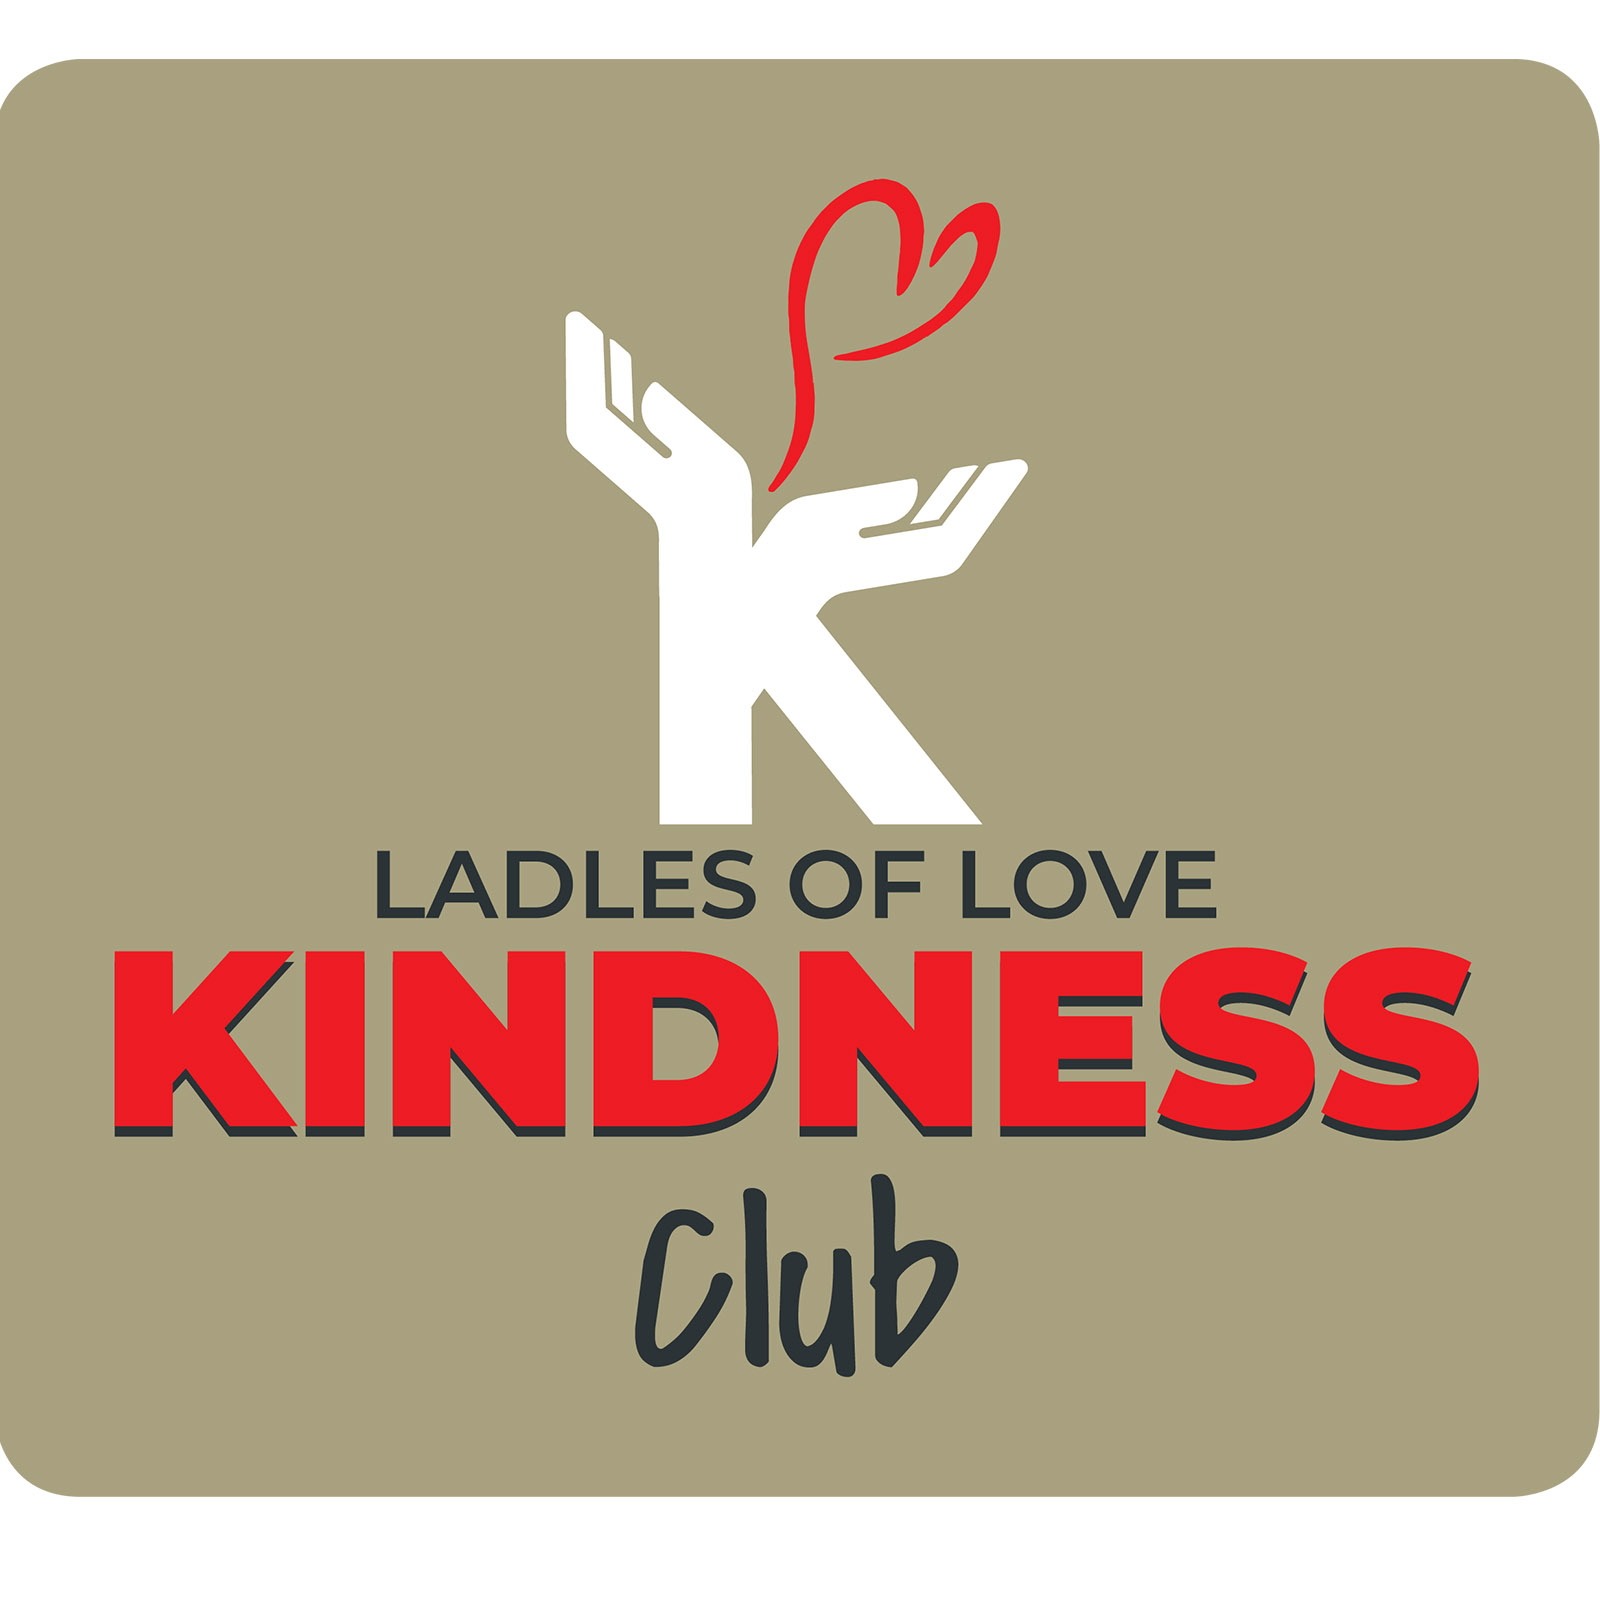 A khaki brown picture with caring hands and a heart coming out form them for the new ladles of love non-profit kindness club benefits logo